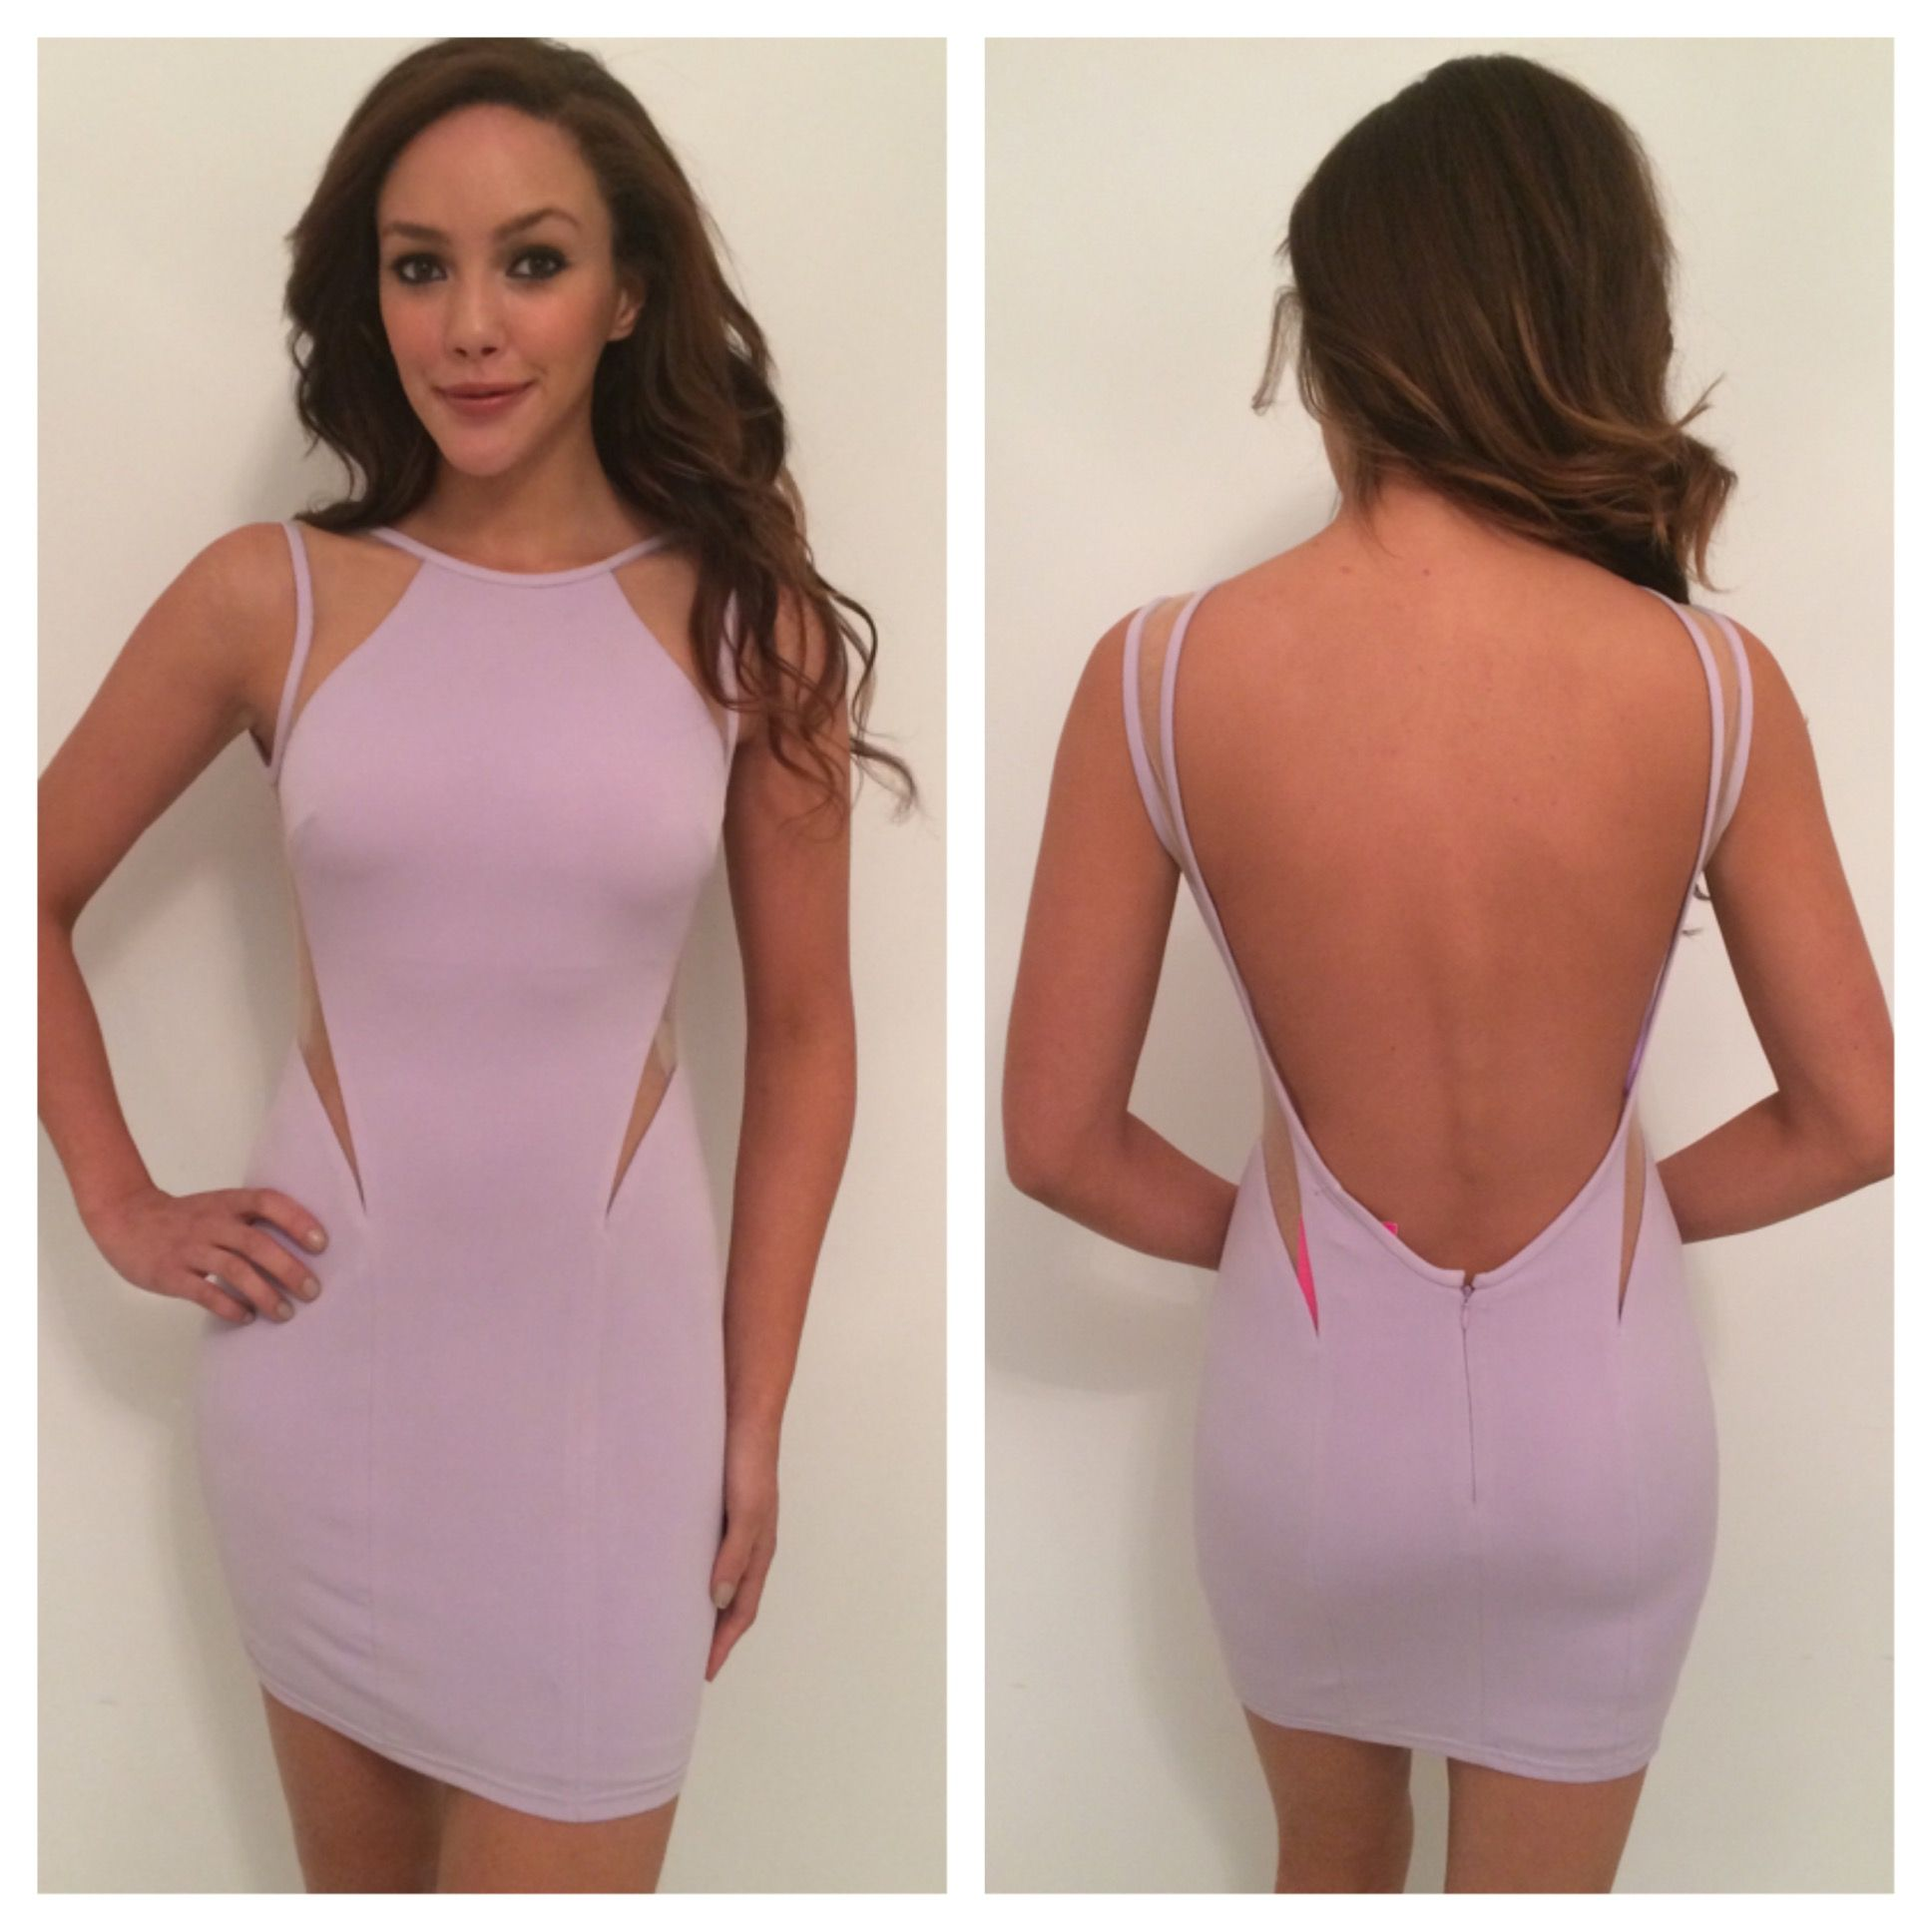 Your favorite #JVN style is available in a pretty new hue http://www.jvn.com/jvn21027-122.html